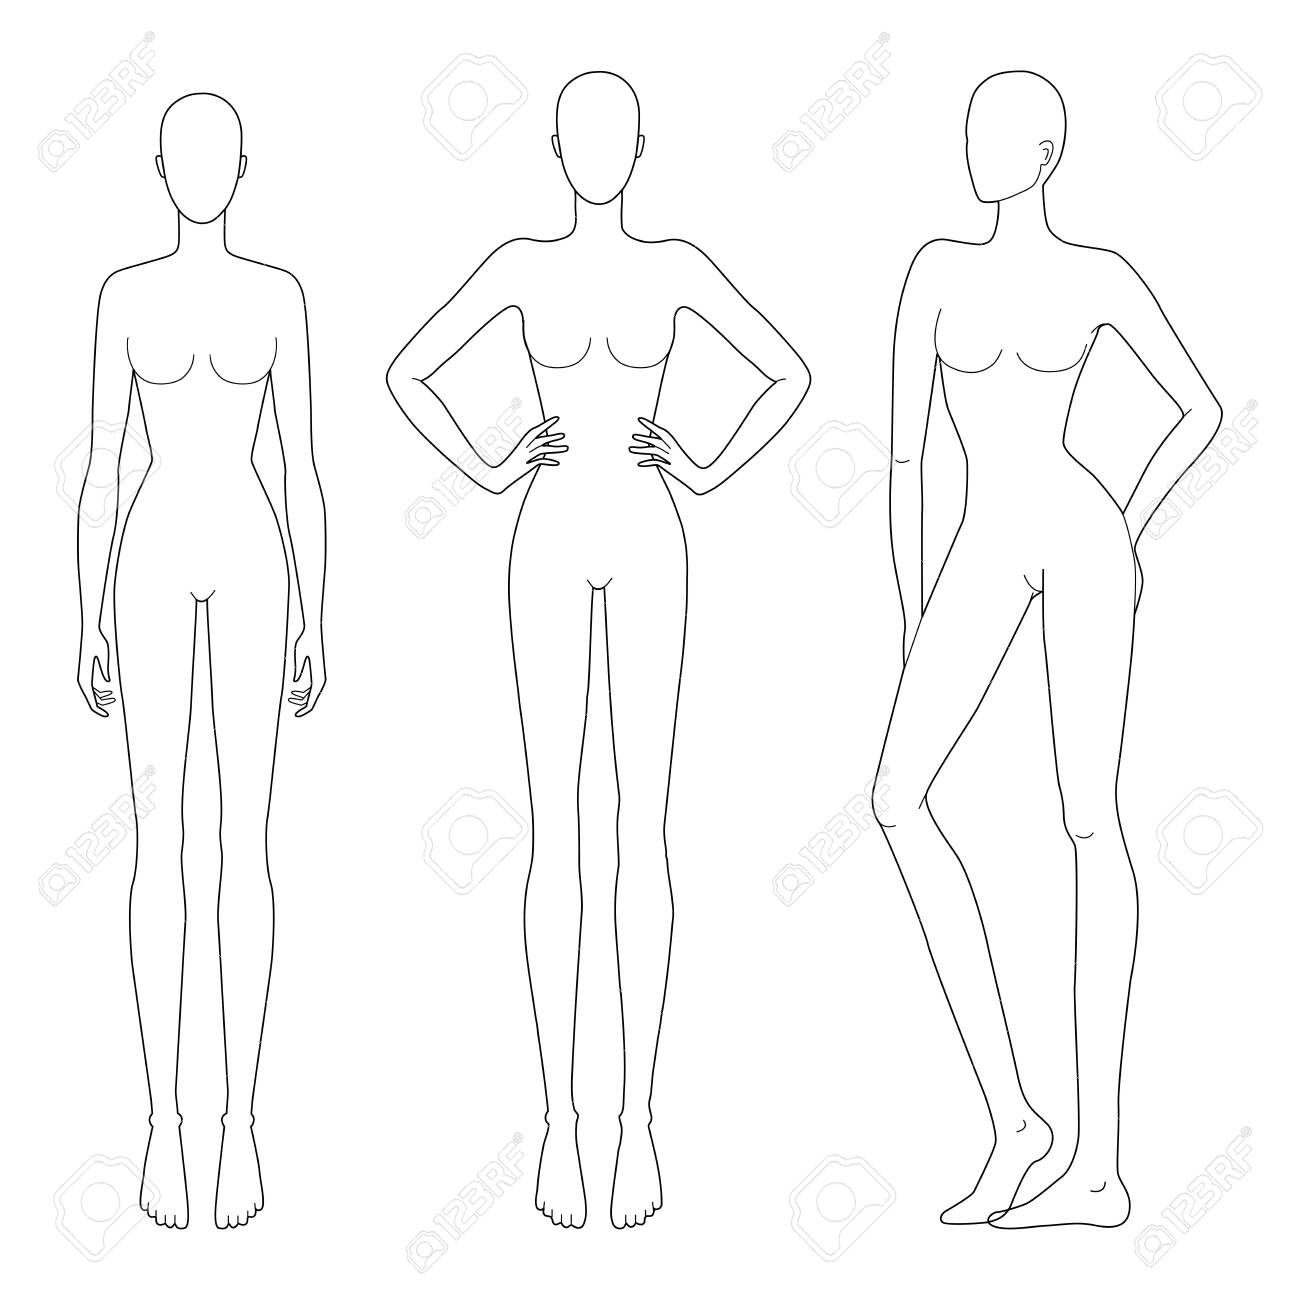 Fashion Template Of Women In Different Standing Poses 9 Head Royalty Free Cliparts Vectors And Stock Illustration Image 139797707